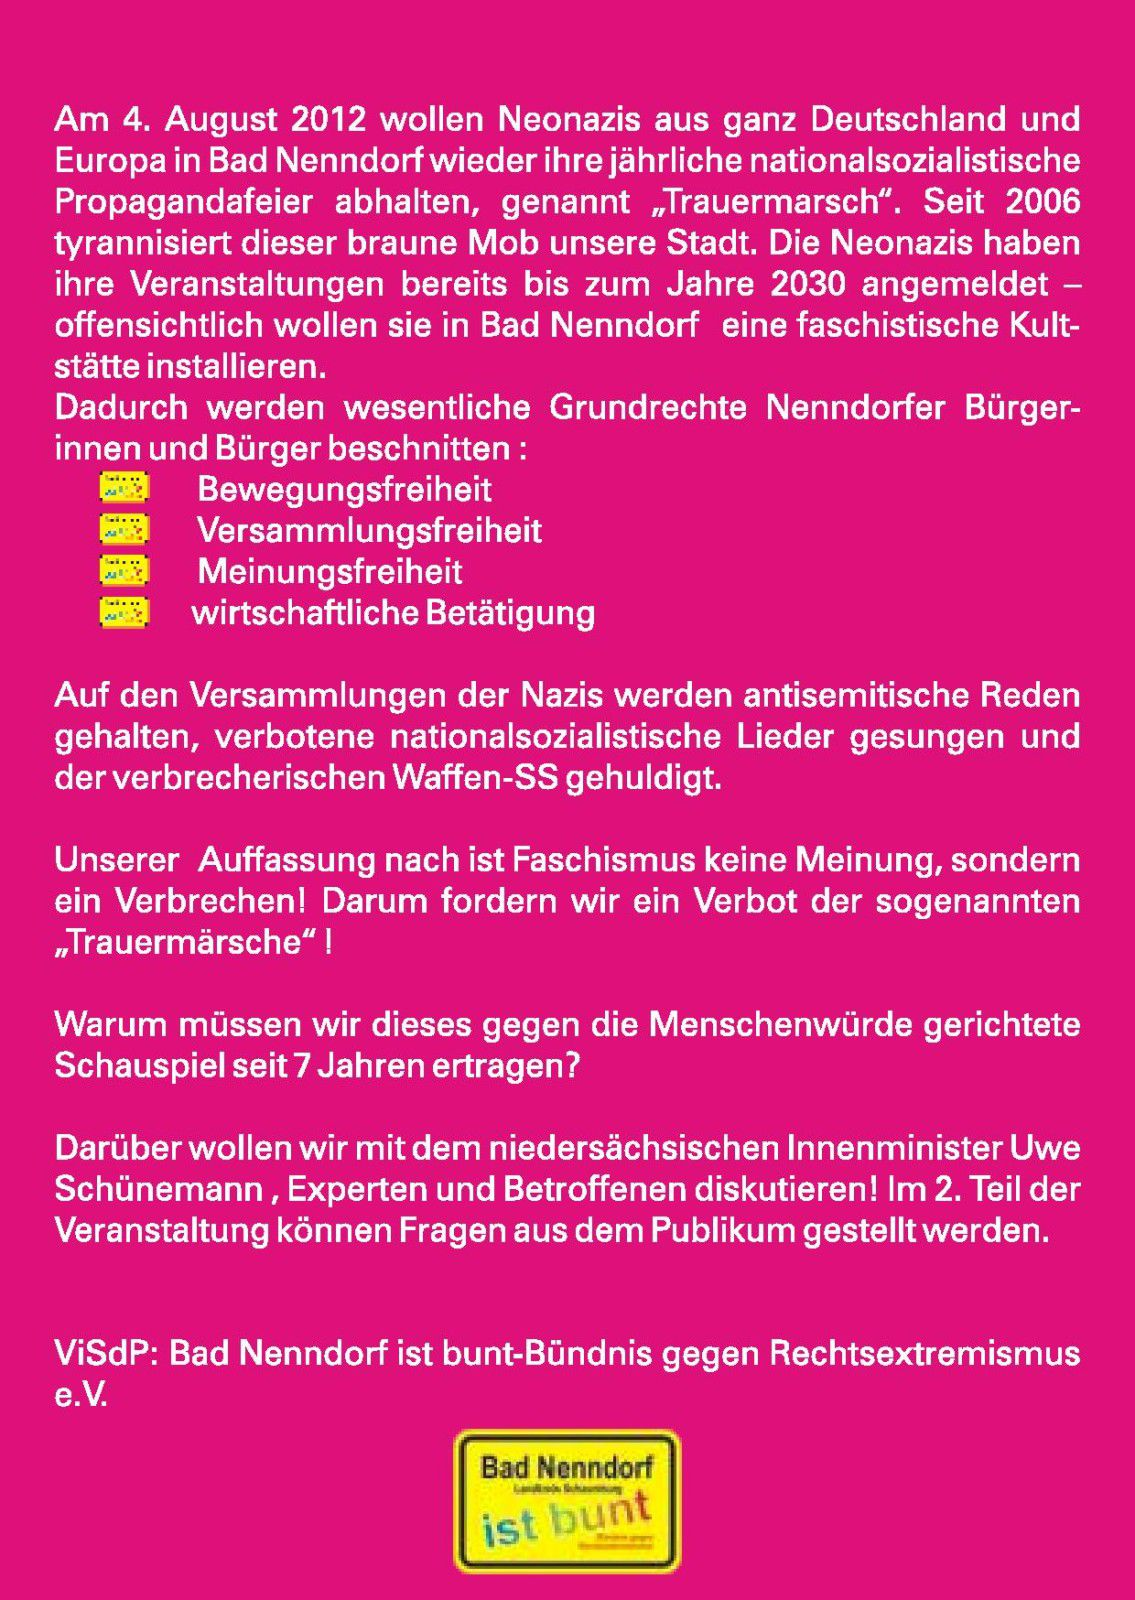 bn_innenminister_Flyer-A5-page-002.jpg